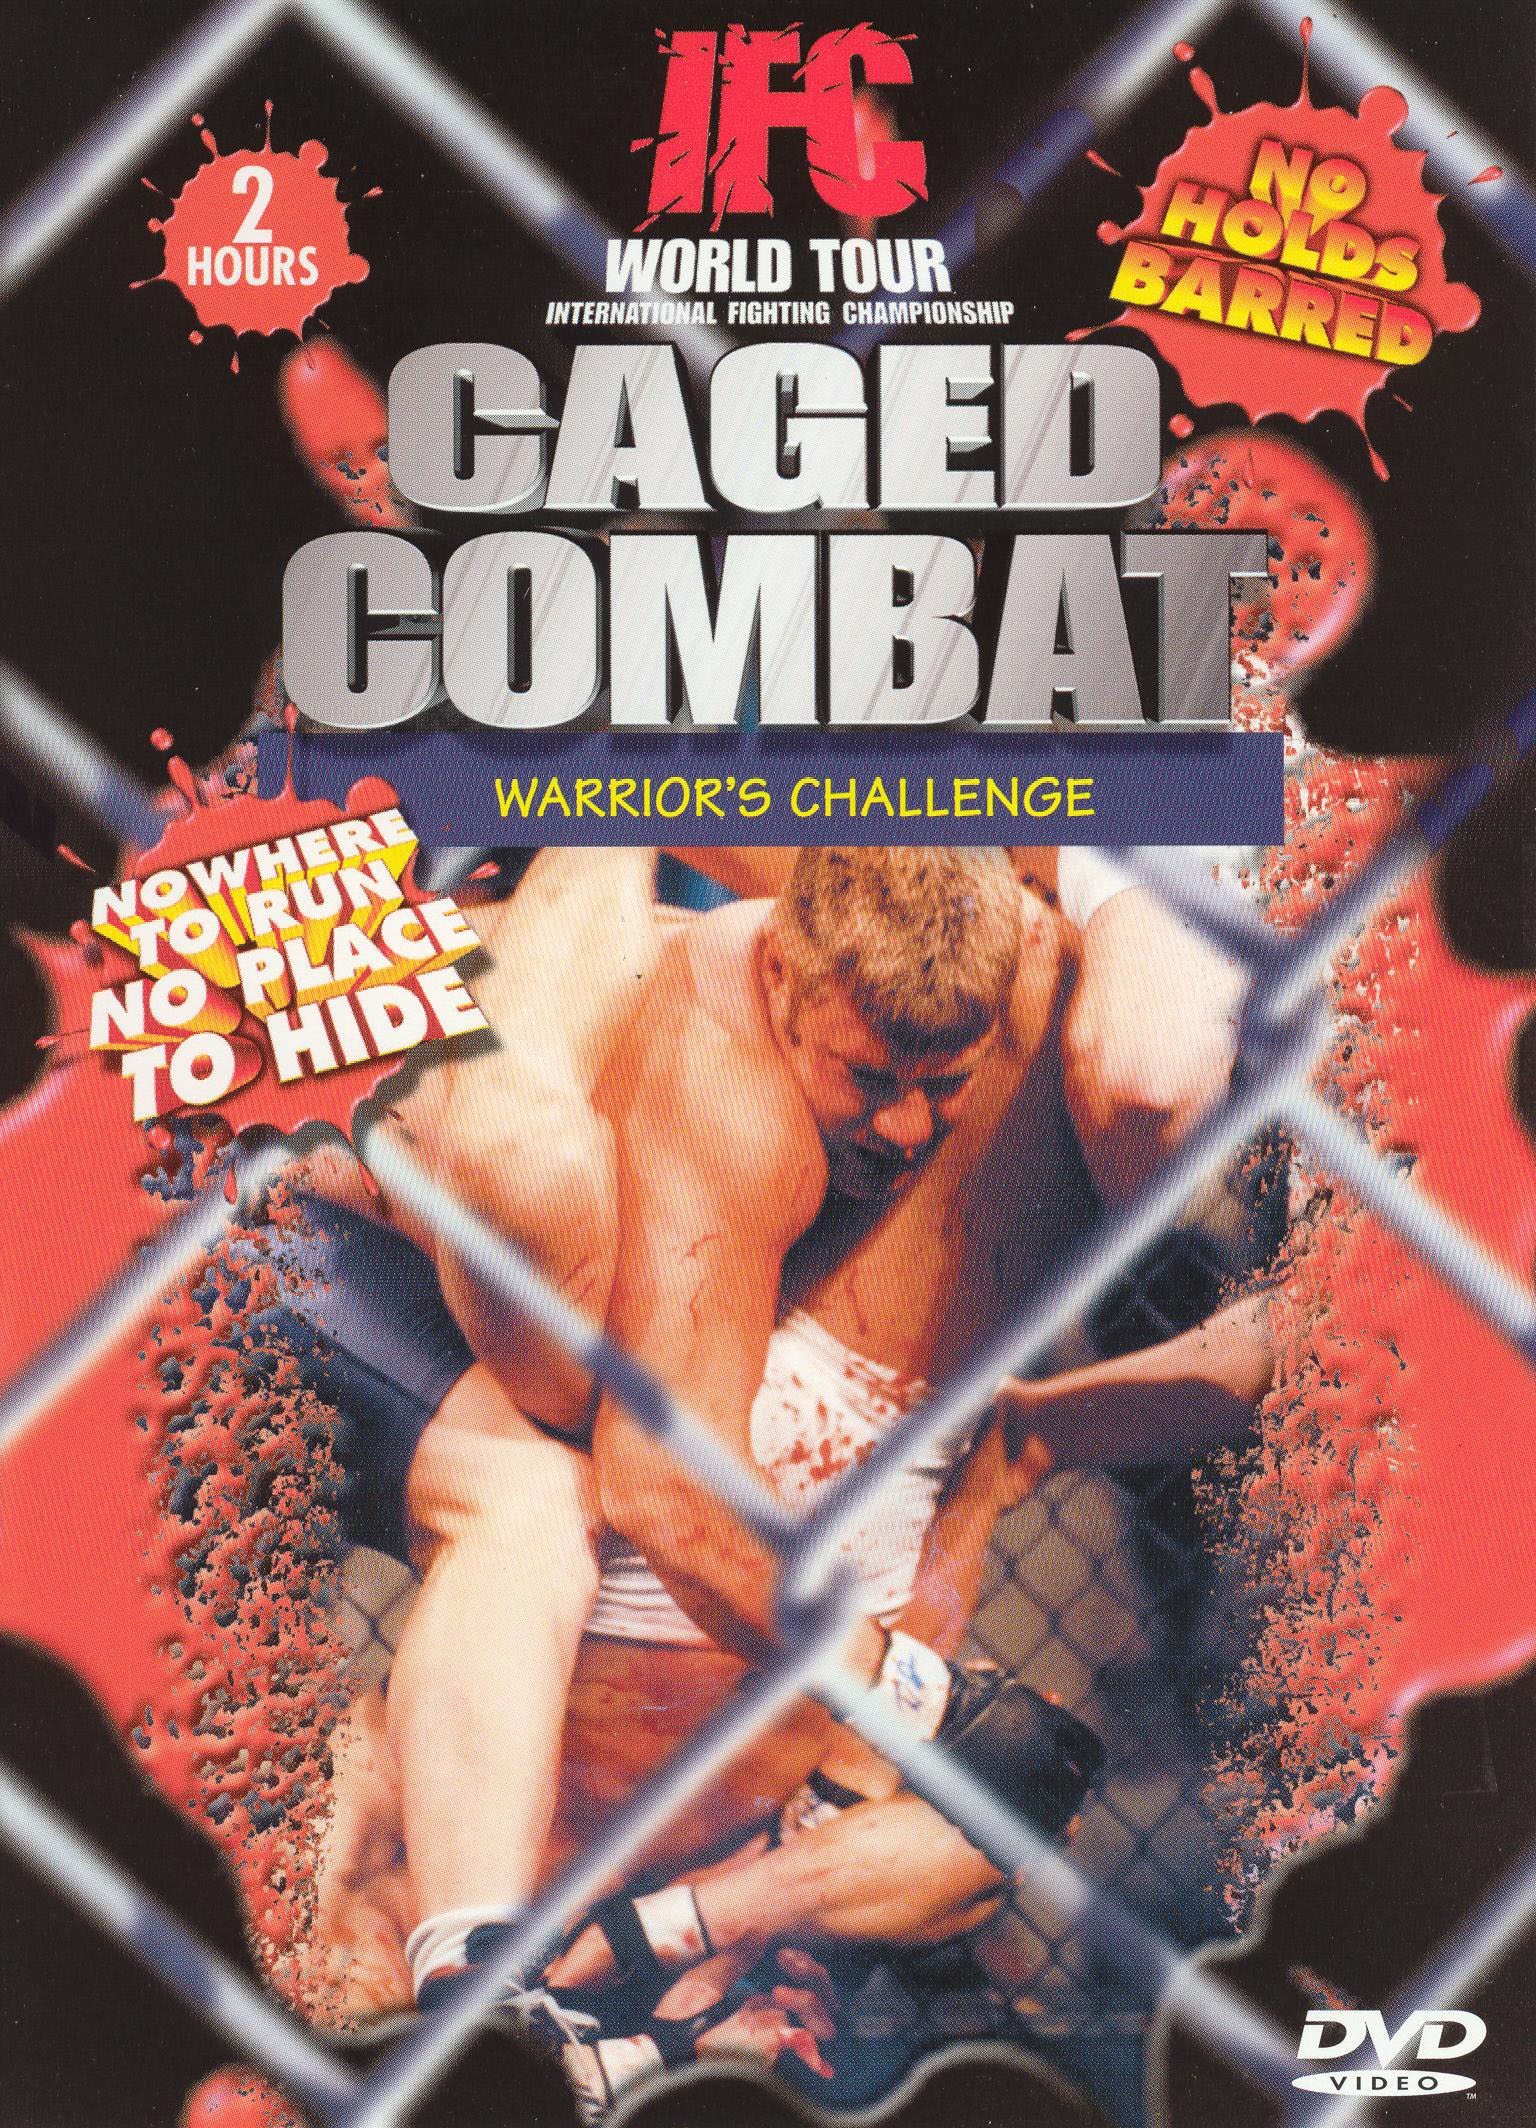 IFC World Tour: Caged Combat - Warrior's Challenge